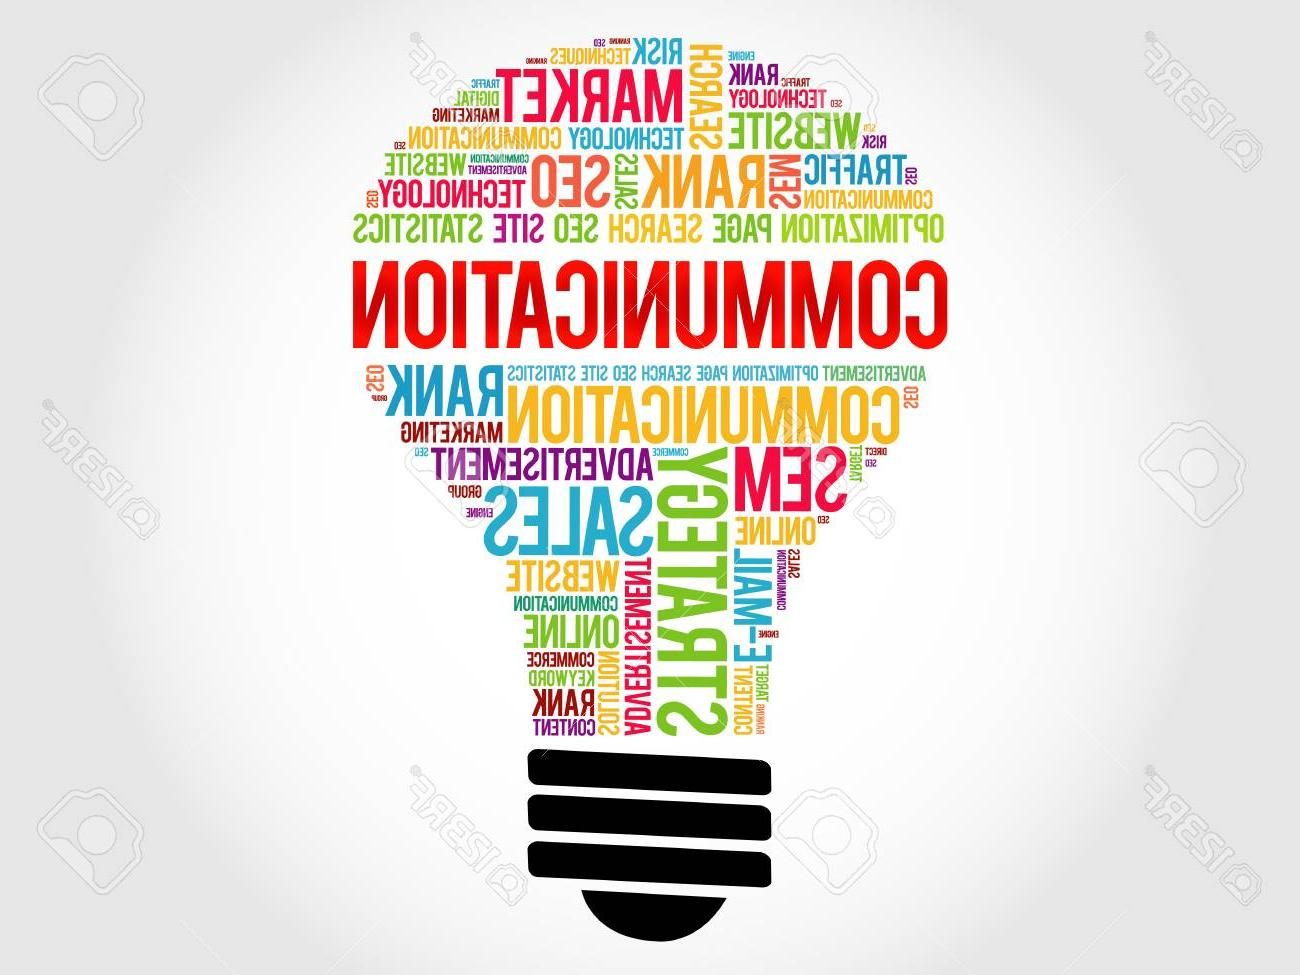 HD Business Communication Clipart Images » Free Vector Art, Images.